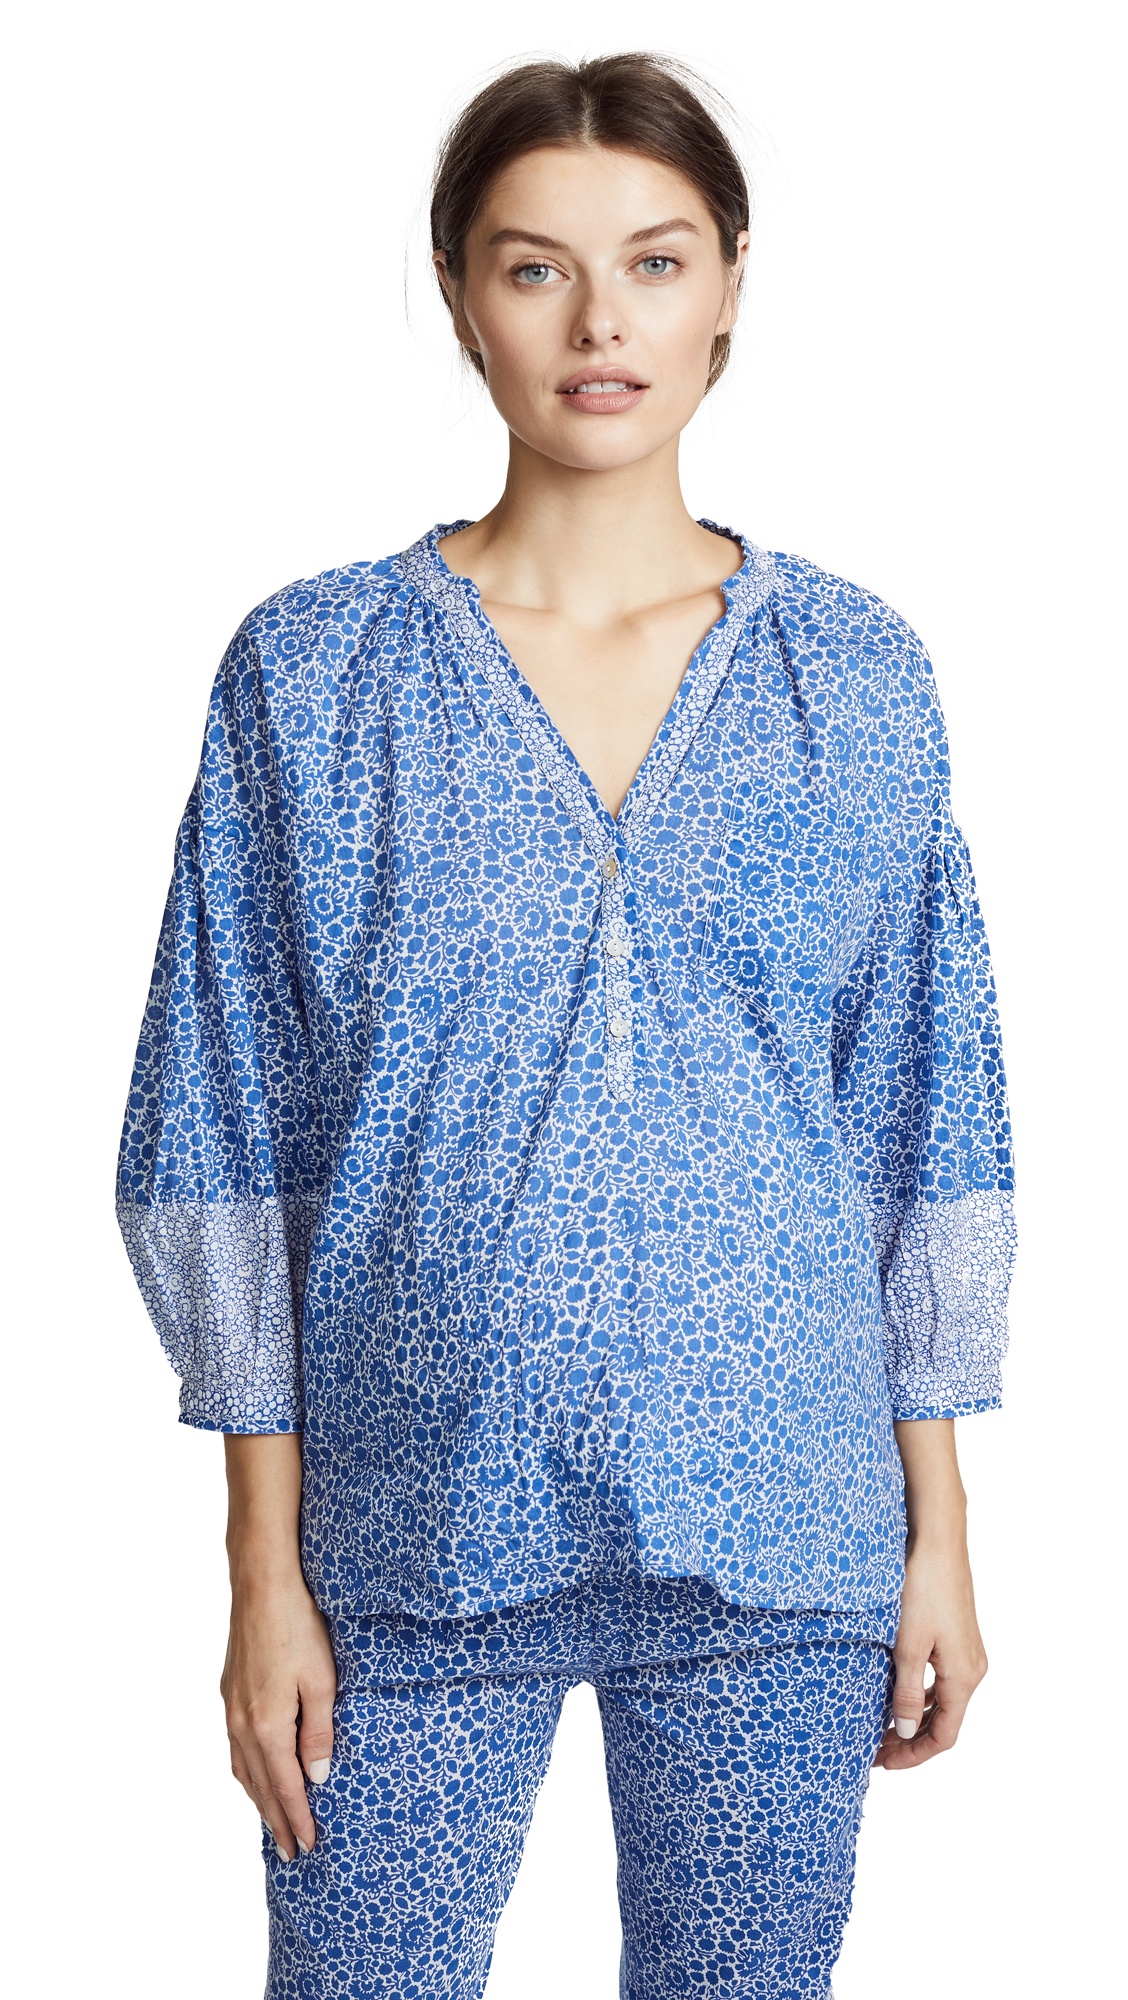 HATCH THE OLIVIA BLOUSE